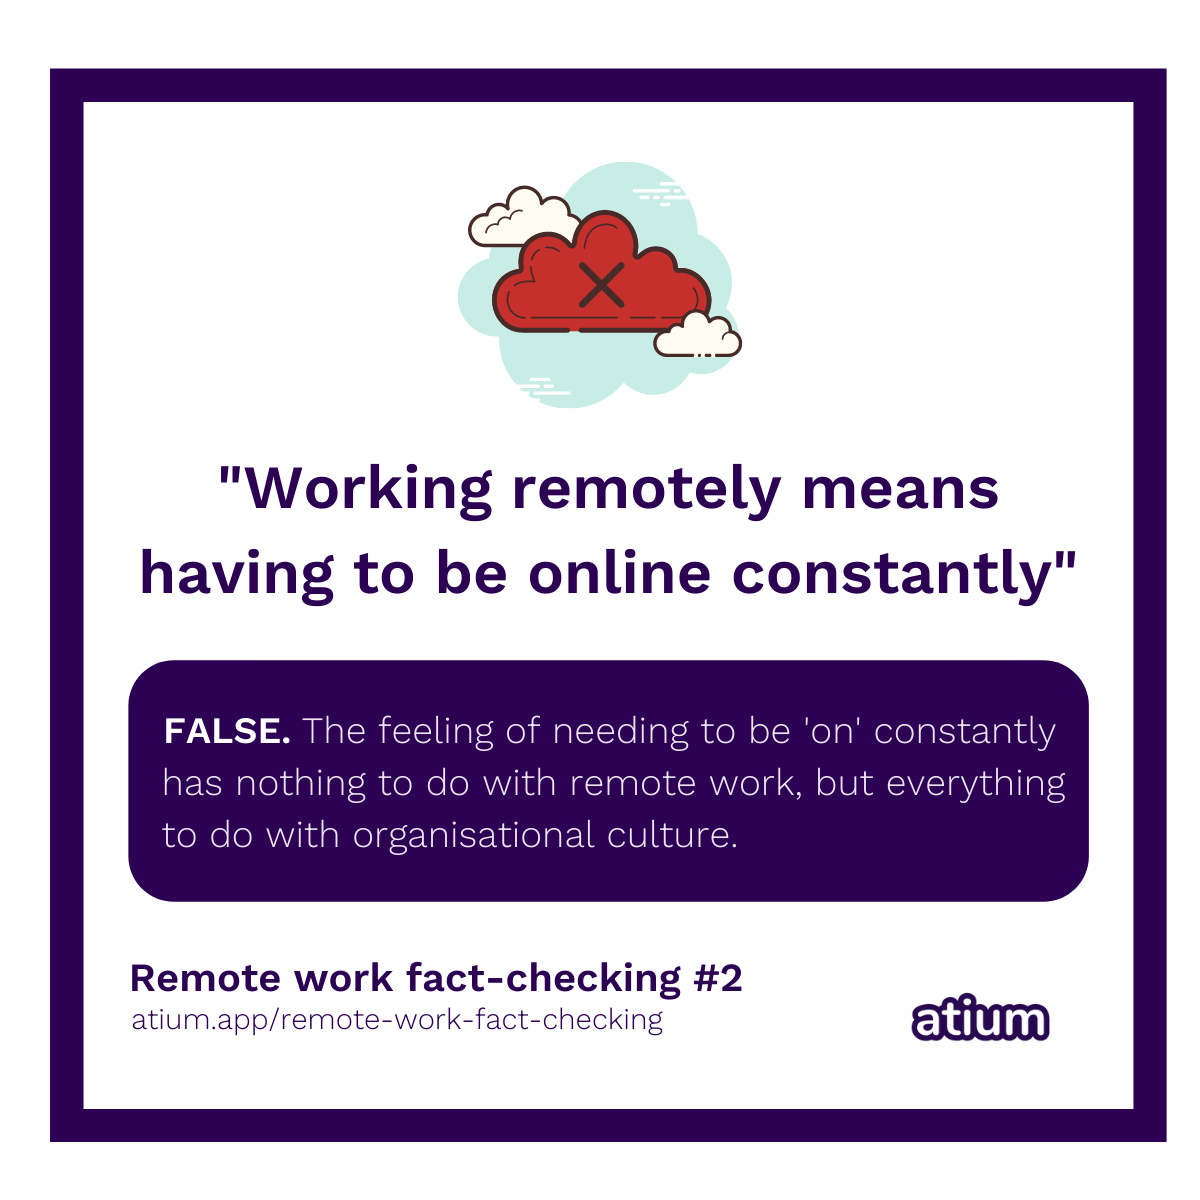 Working remotely means having to be online constantly